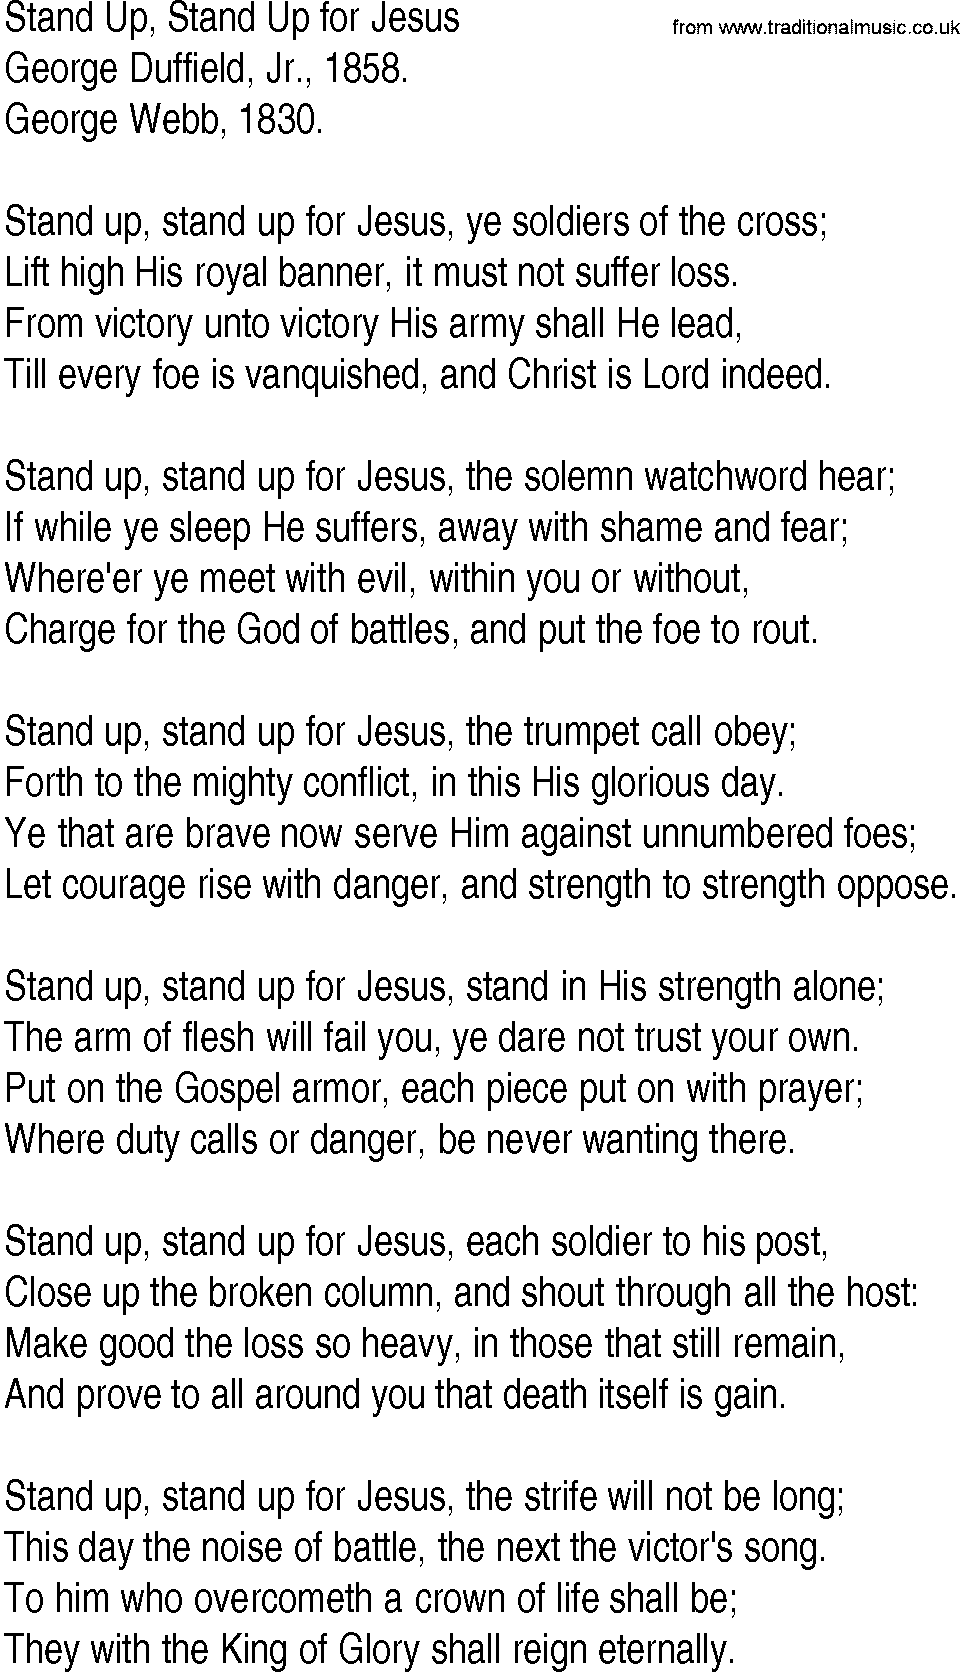 Hymn And Gospel Song Lyrics For Stand Up Stand Up For Jesus By George Duffield Jr